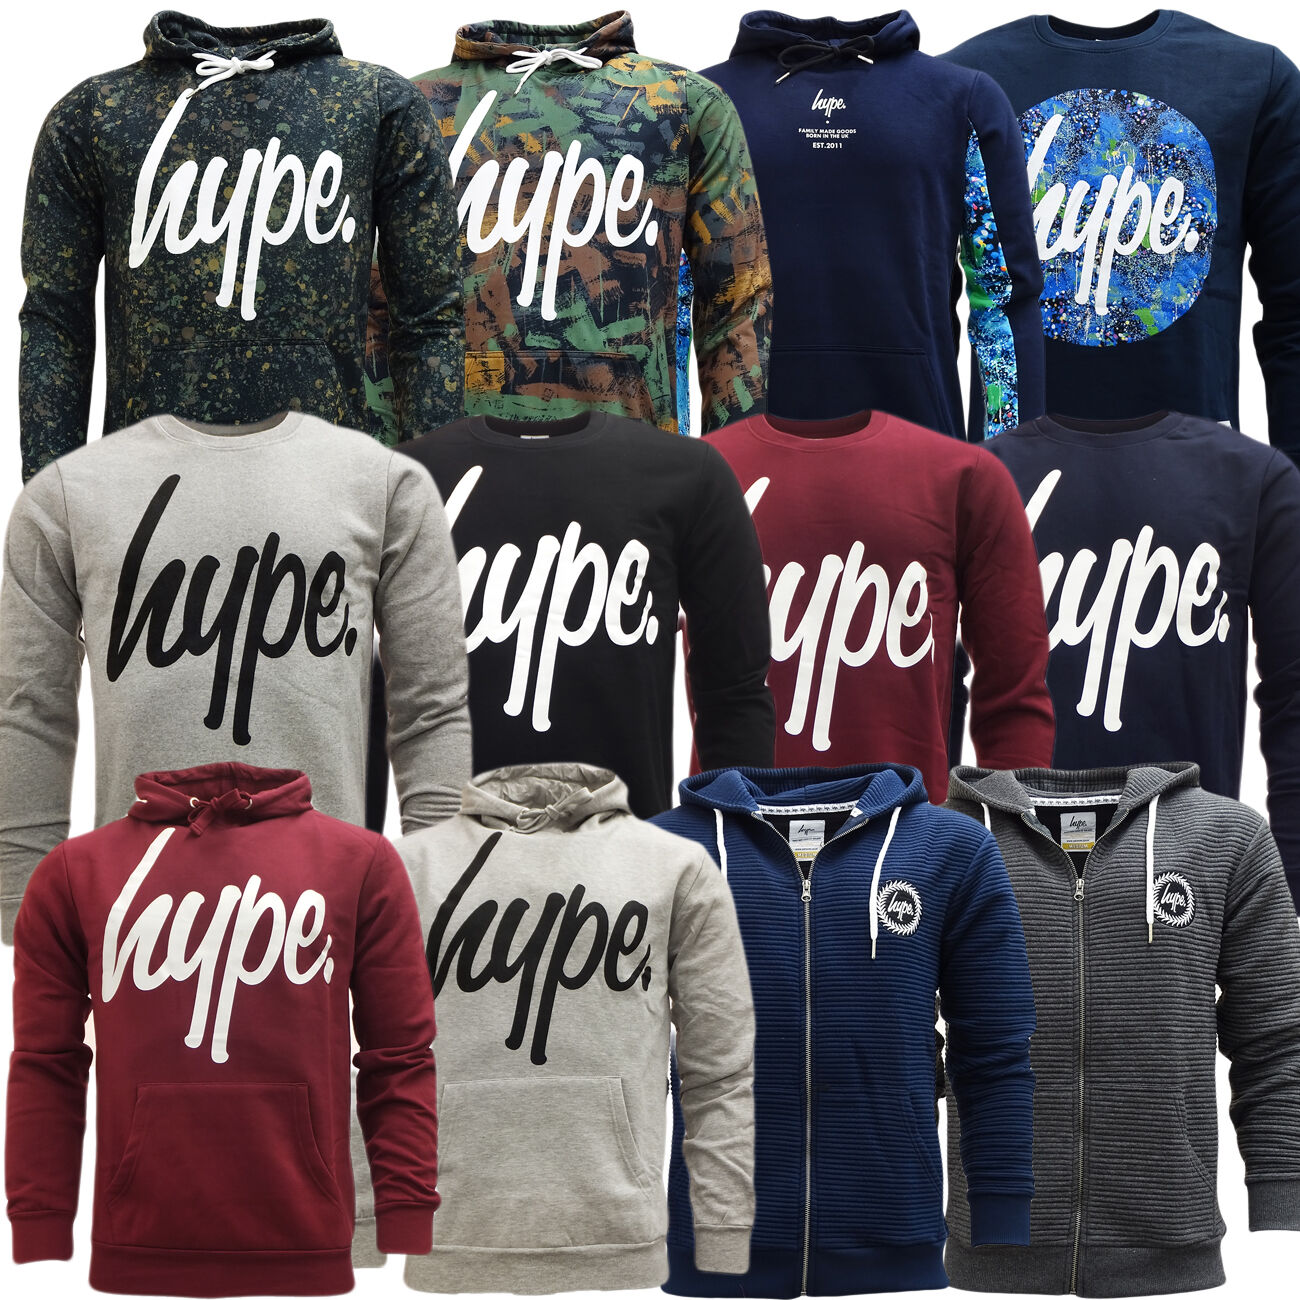 HYPE JUMPER - Sweatshirt Hoodie / Hooded Jumper - NEW XXS XS S M L XL XXL